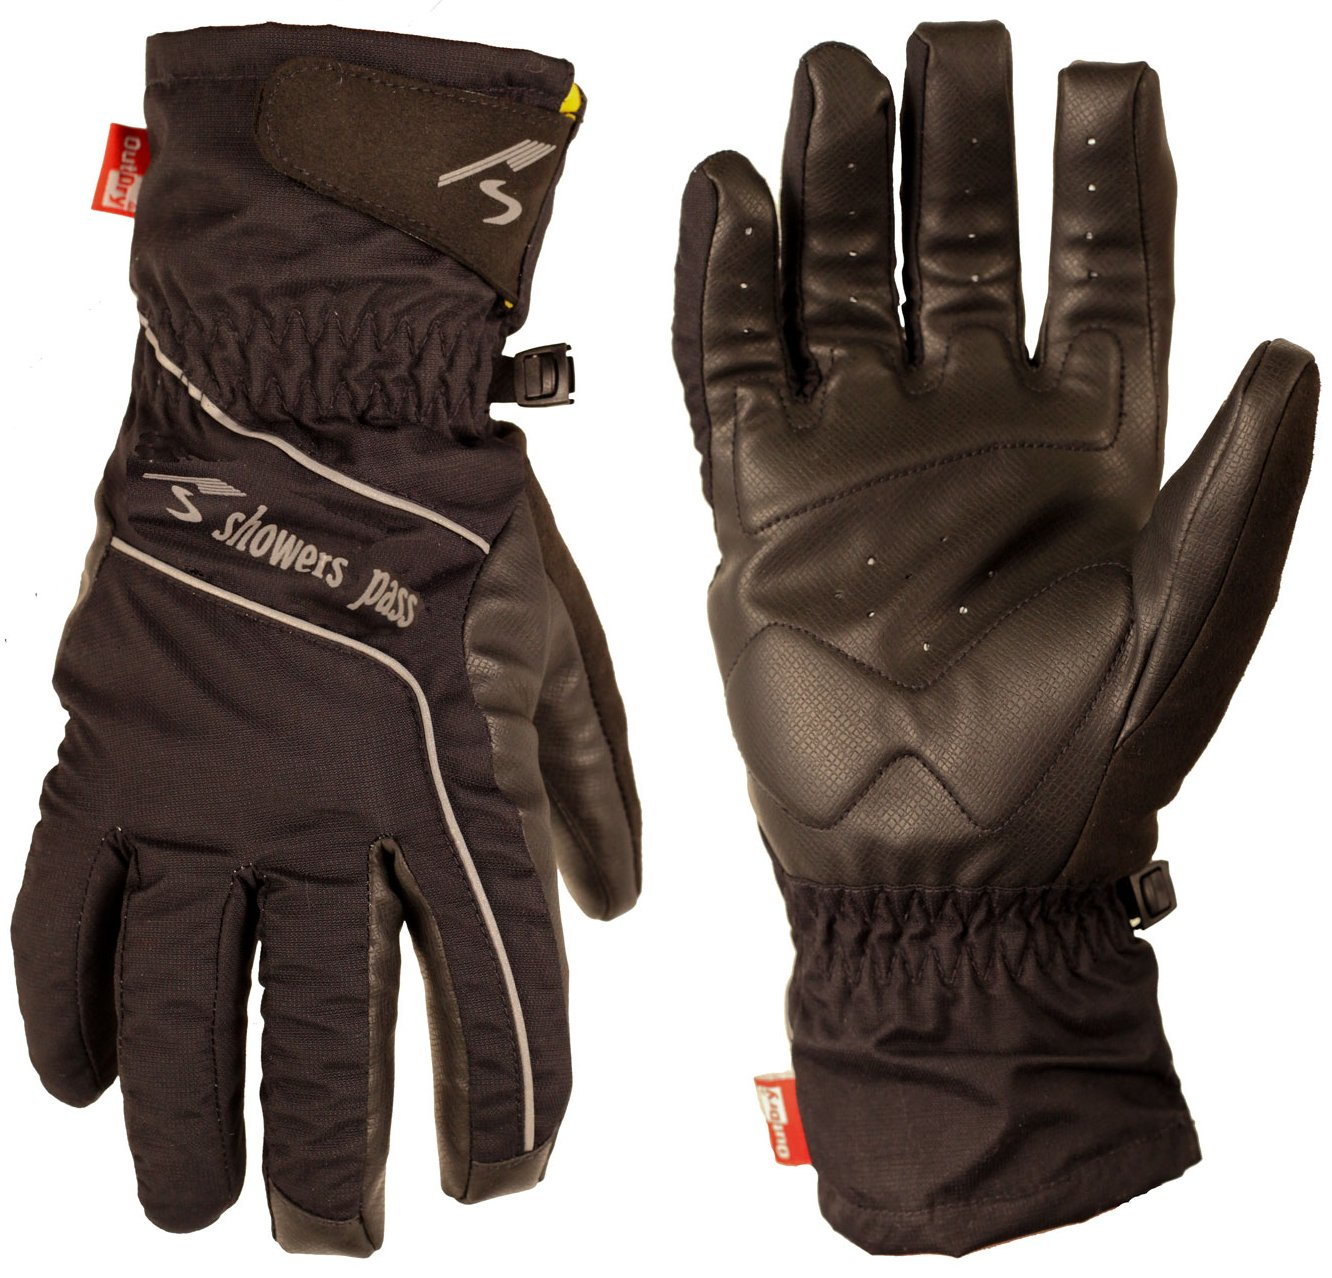 Showerspass Crosspoint Hard Shell WP Winter Cycling Glove